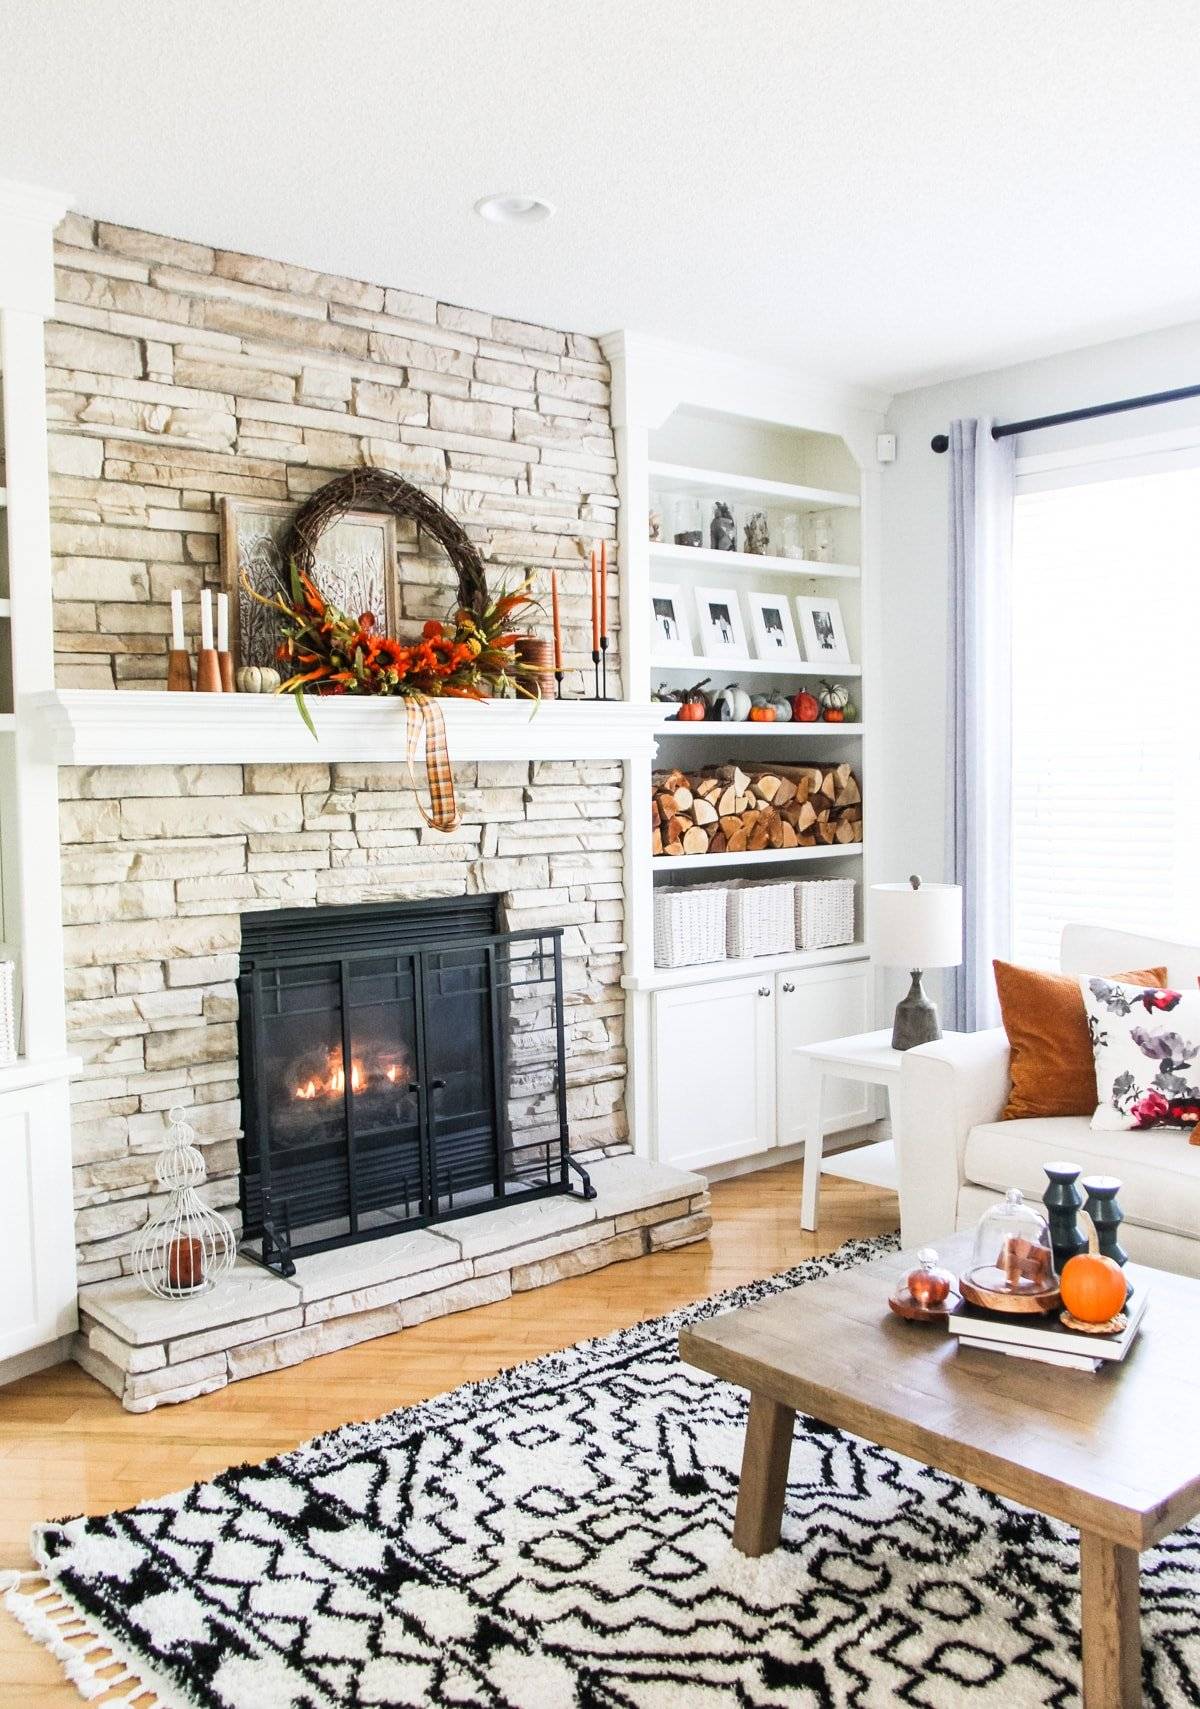 Fall Home Tour: A Simple Fall Mantel on a stone fireplace that is decorated with a large grapevine wreath, candles, stacked wood and pumpkins. In the foreground is a black and white rug, a coffee table with candles and books